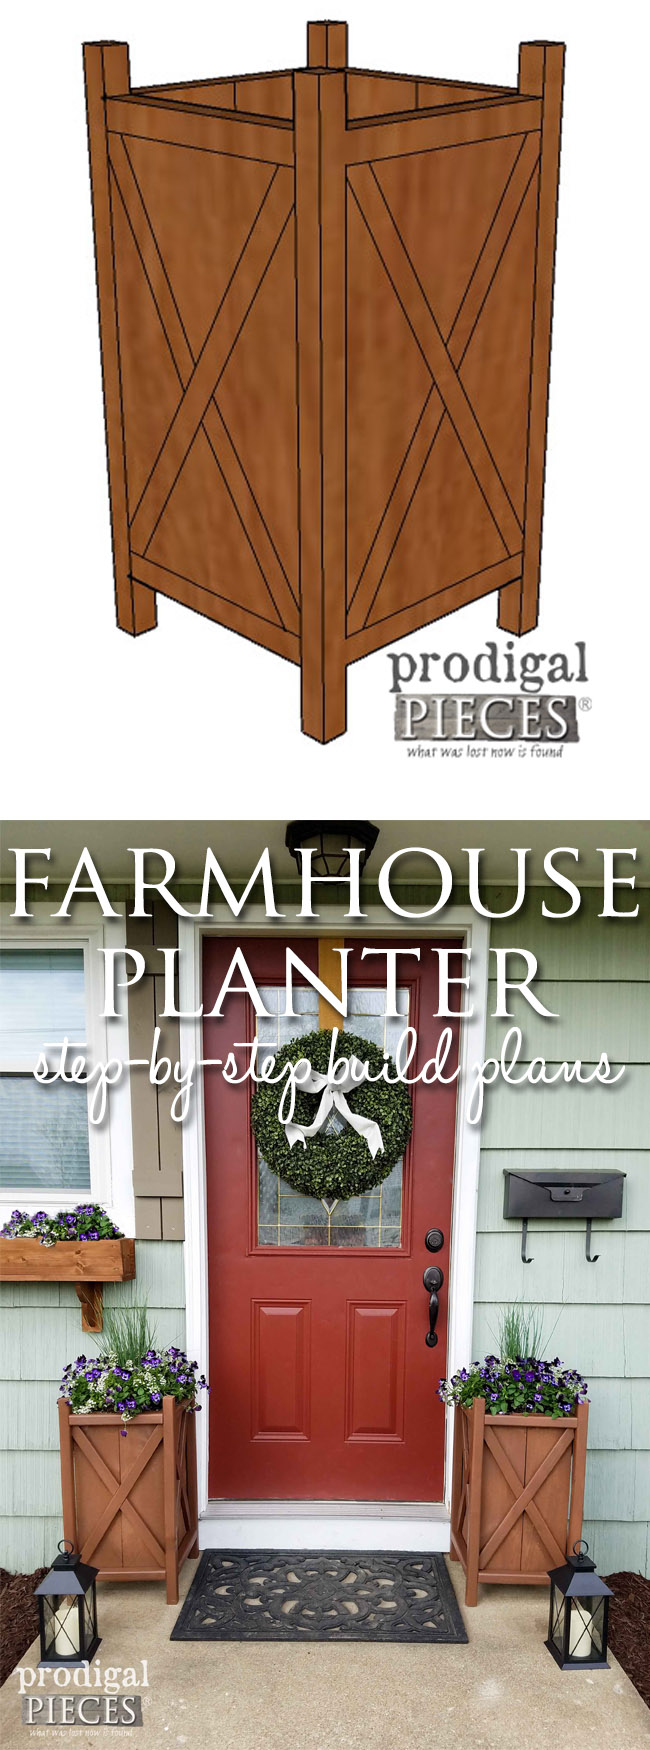 Create curb appeal with this easy-to-follow build plan for 2 planters for less than $40! Video included. Head to Prodigal Pieces | prodigalpieces.com